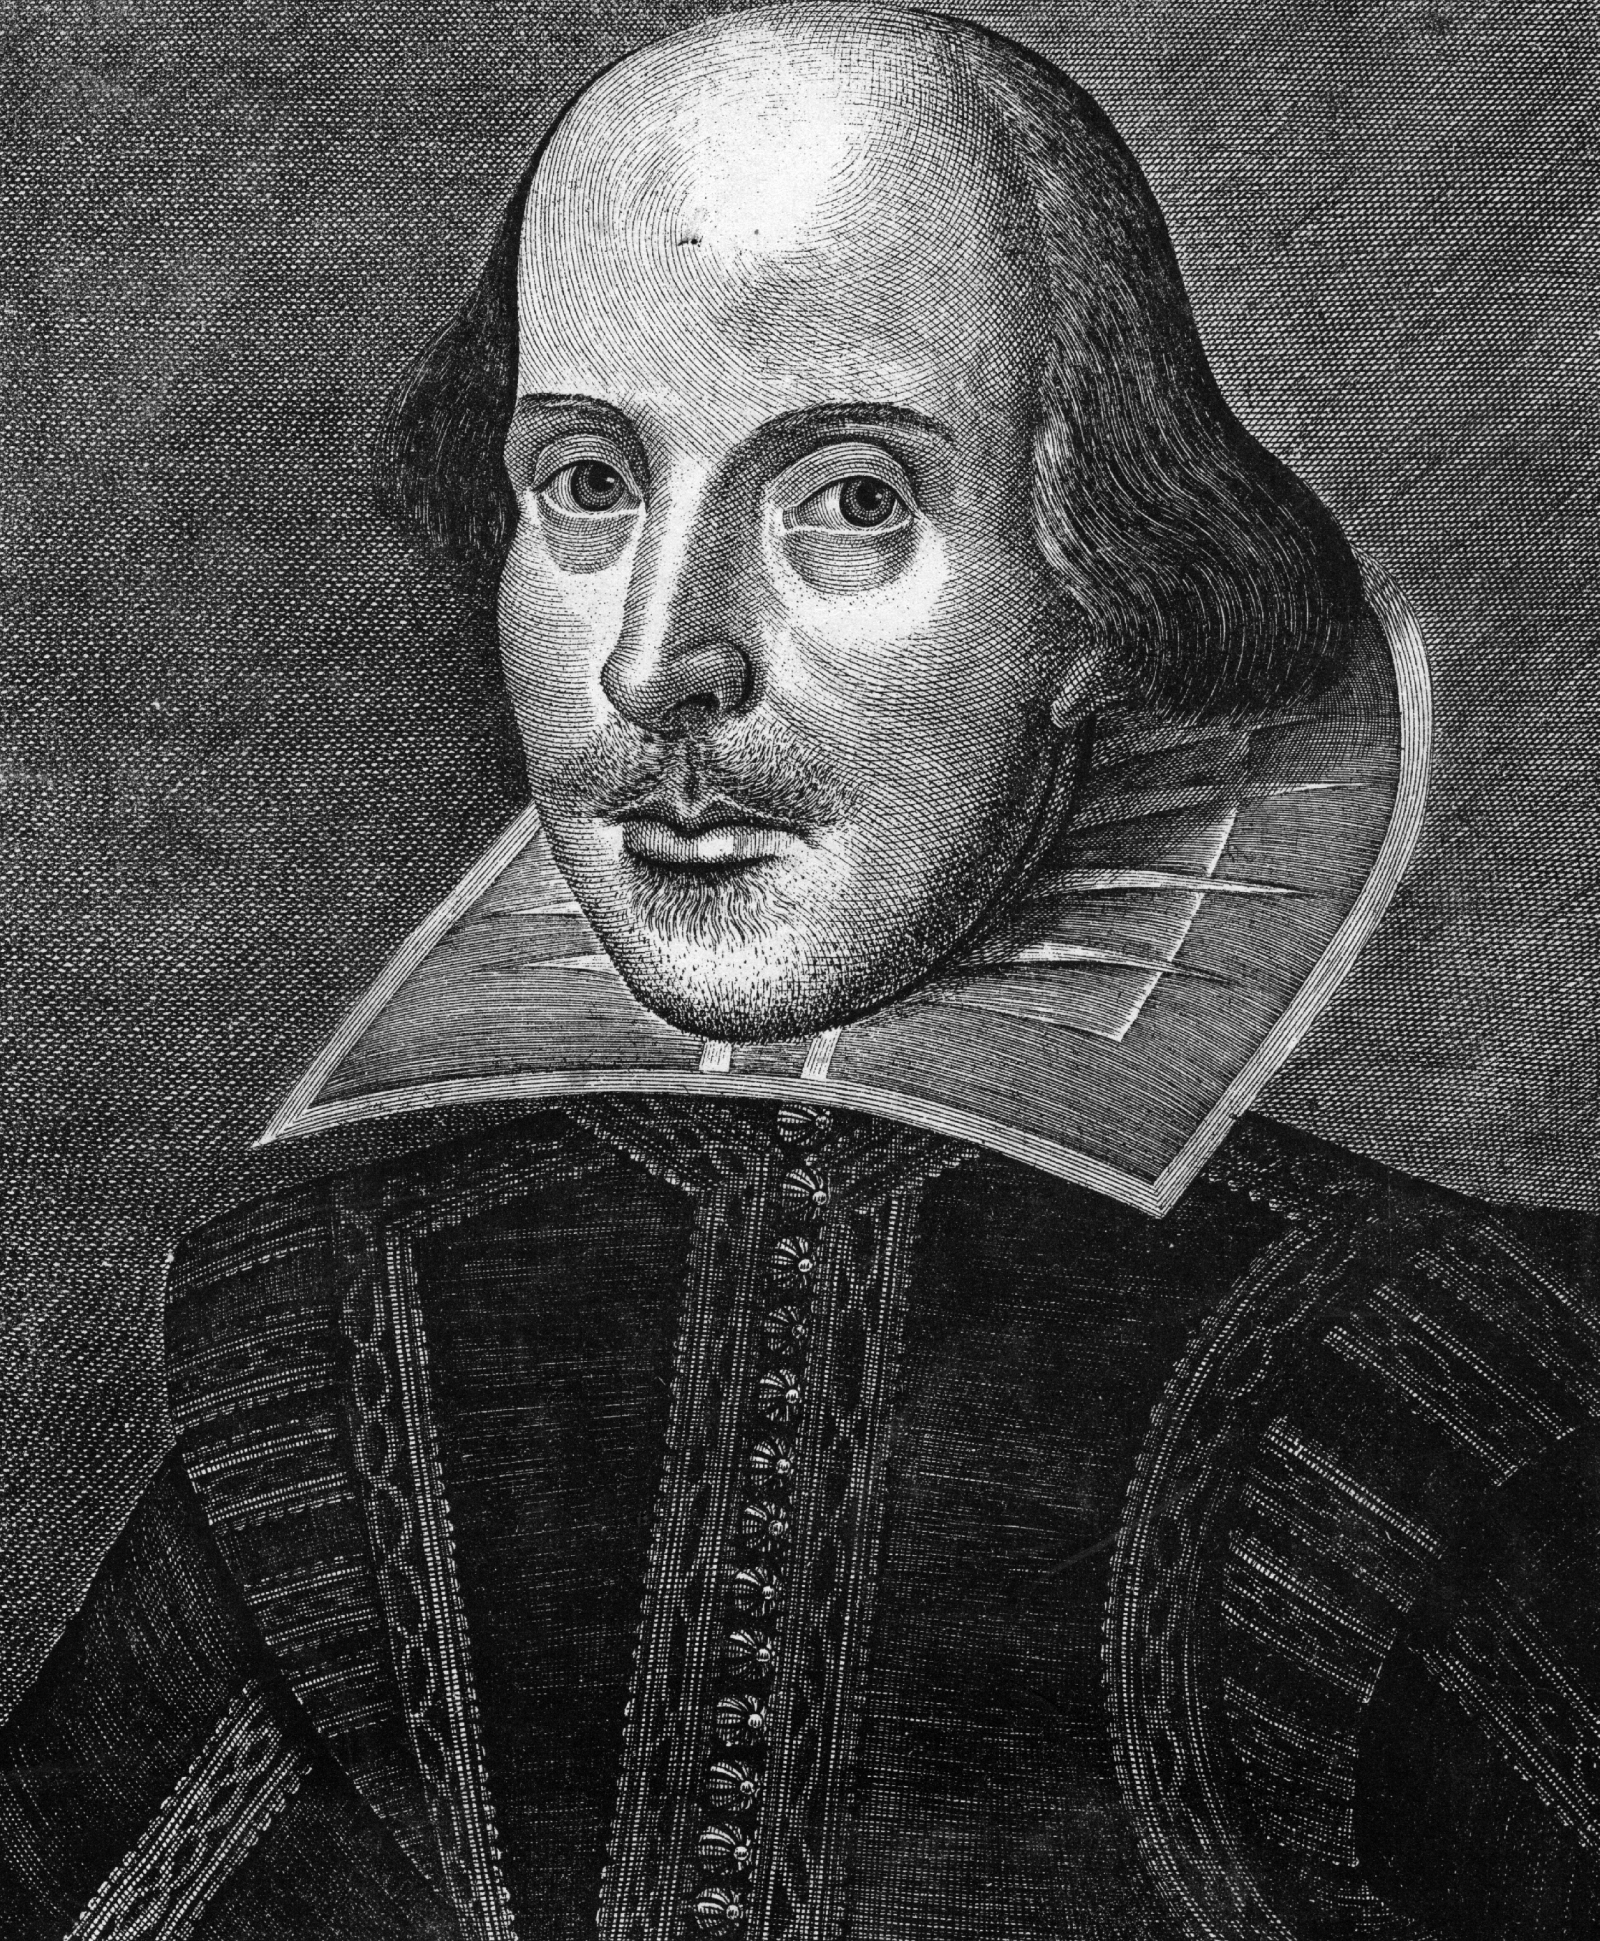 Shakespeares will on display